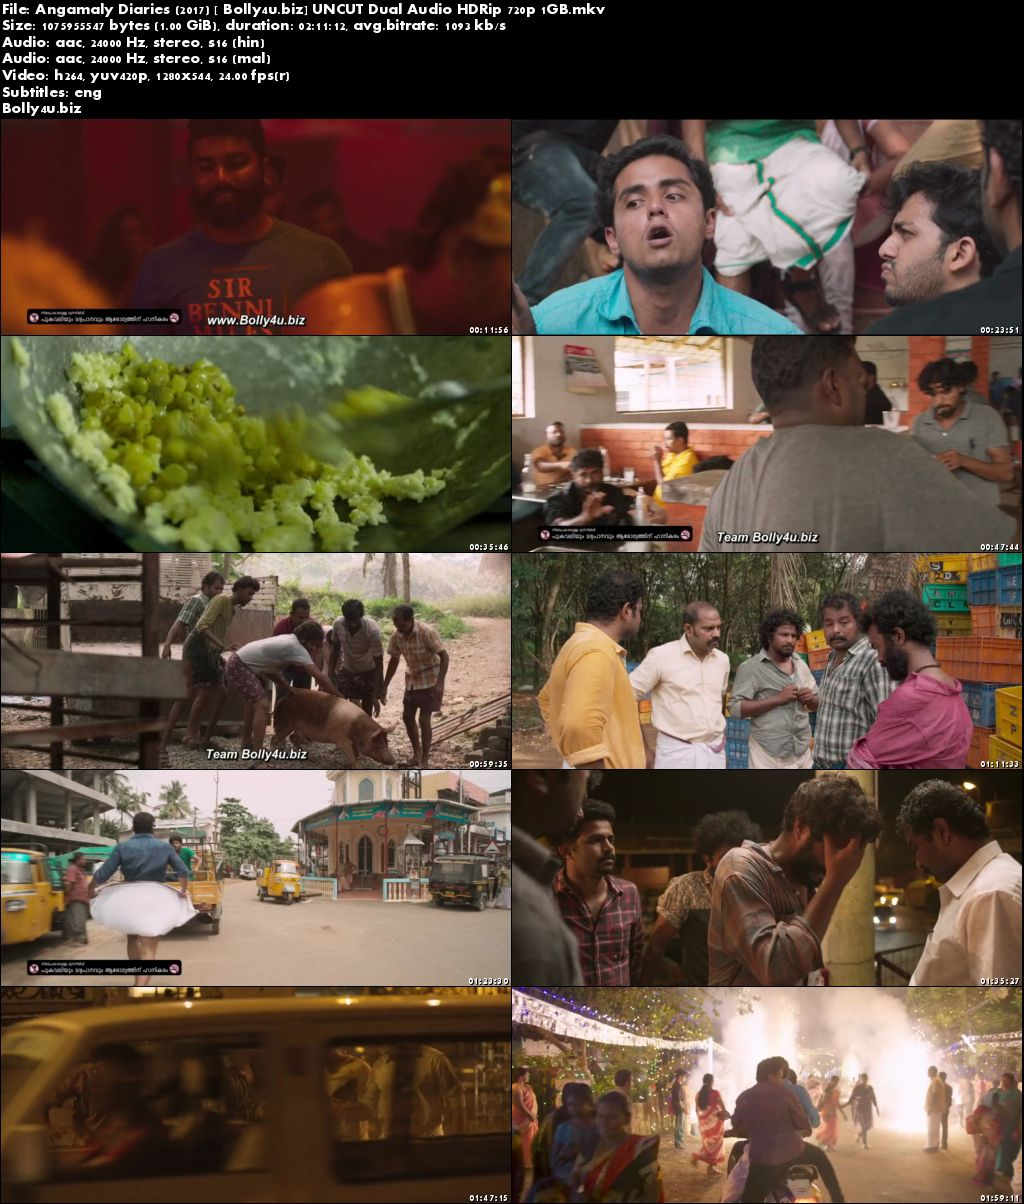 Angamaly Diaries 2017 HDRip 1GB UNCUT Hindi Dual Audio 720p Download